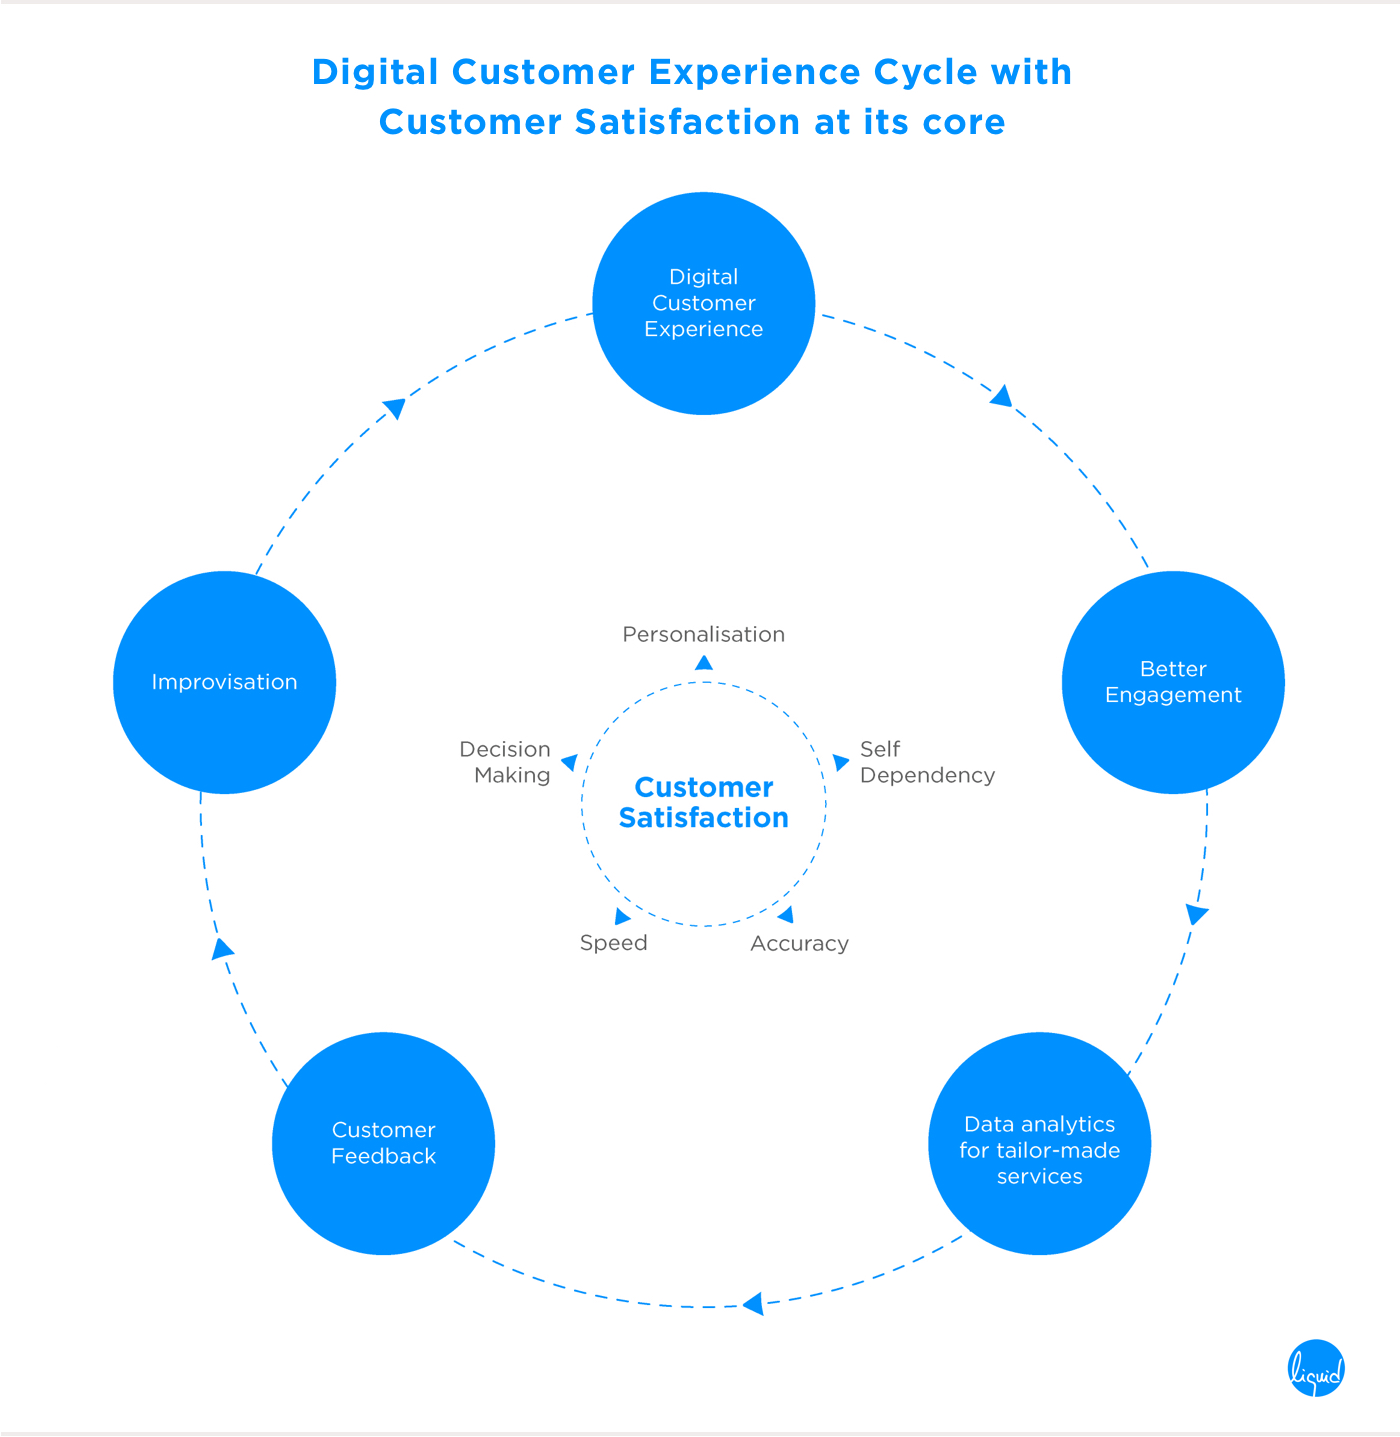 Digital Customer Experience Cycle with Customer Satisfaction at its core